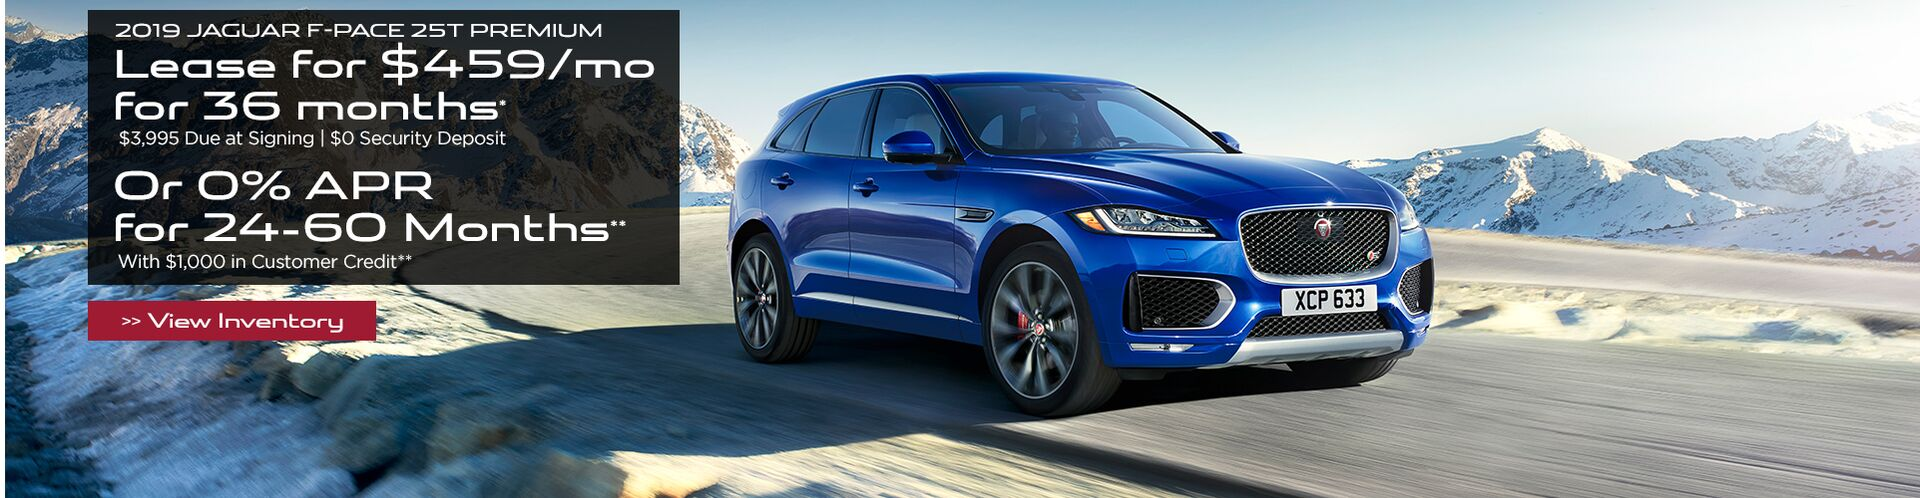 New 2019 Jaguar F-PACE in San Antonio TX, serving Boerne, San Marcos